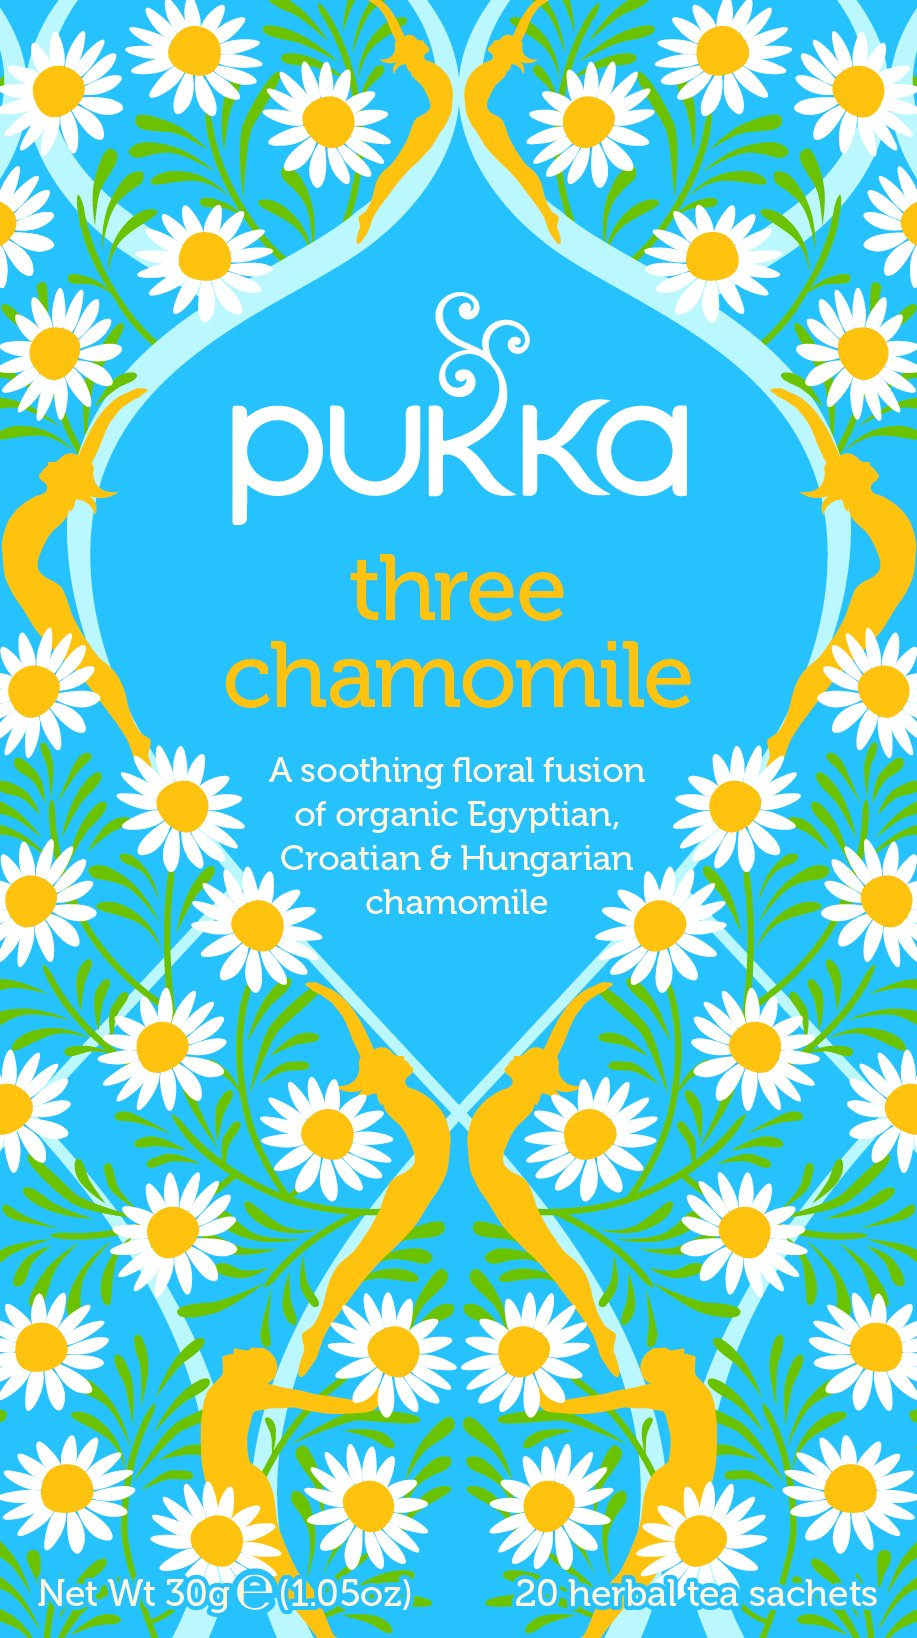 Pukka relax range tea bundle (soil association) (infusions) (4 packs of 20 bags) (80 bags) (a floral tea with aromas of camomile) (brews in up to 15 min)